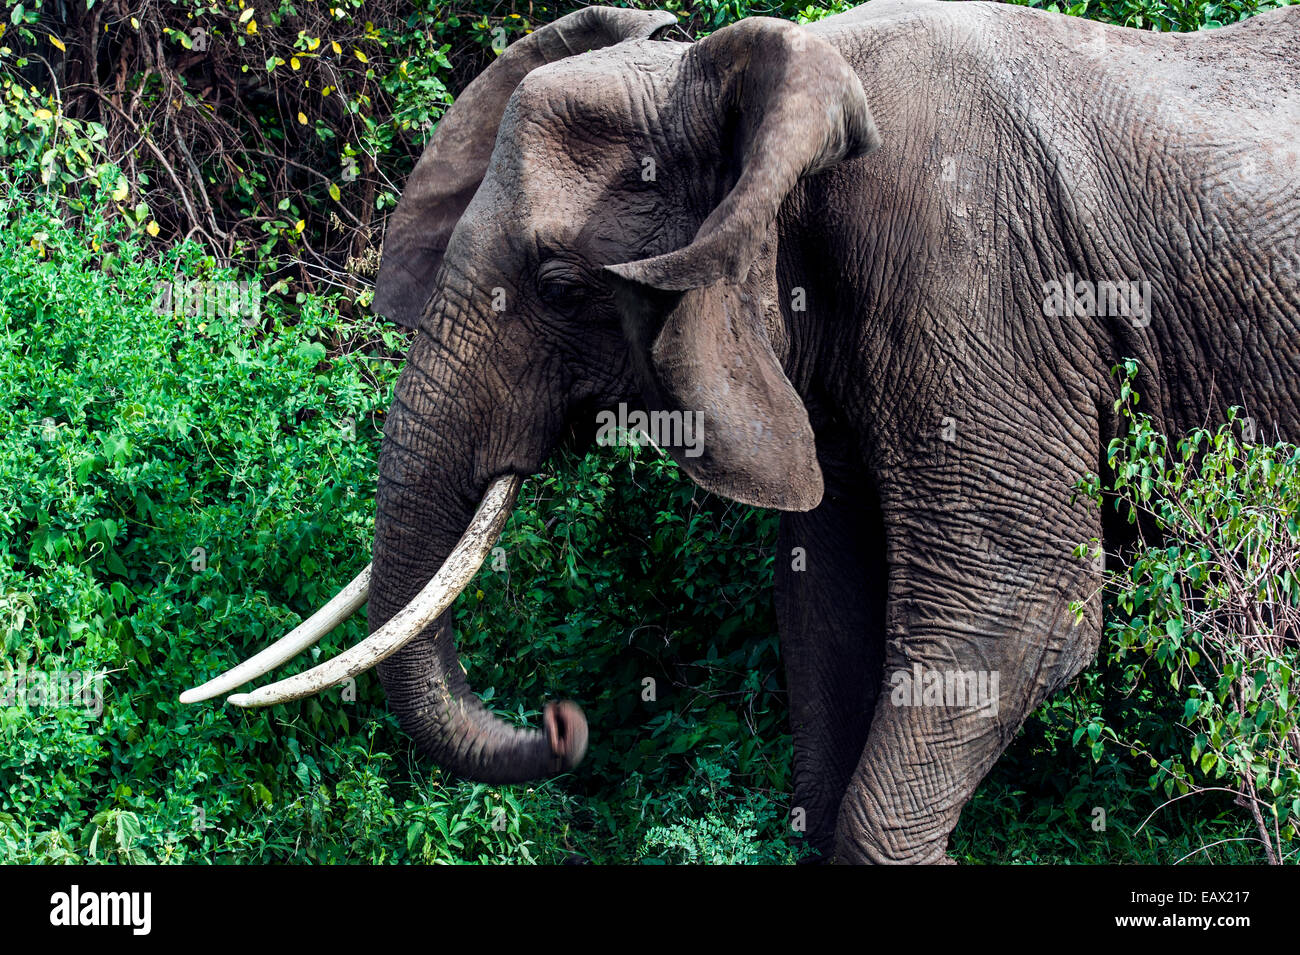 An African Elephant feeding on foliage in an evergreen forest clearing flaps his ears. - Stock Image